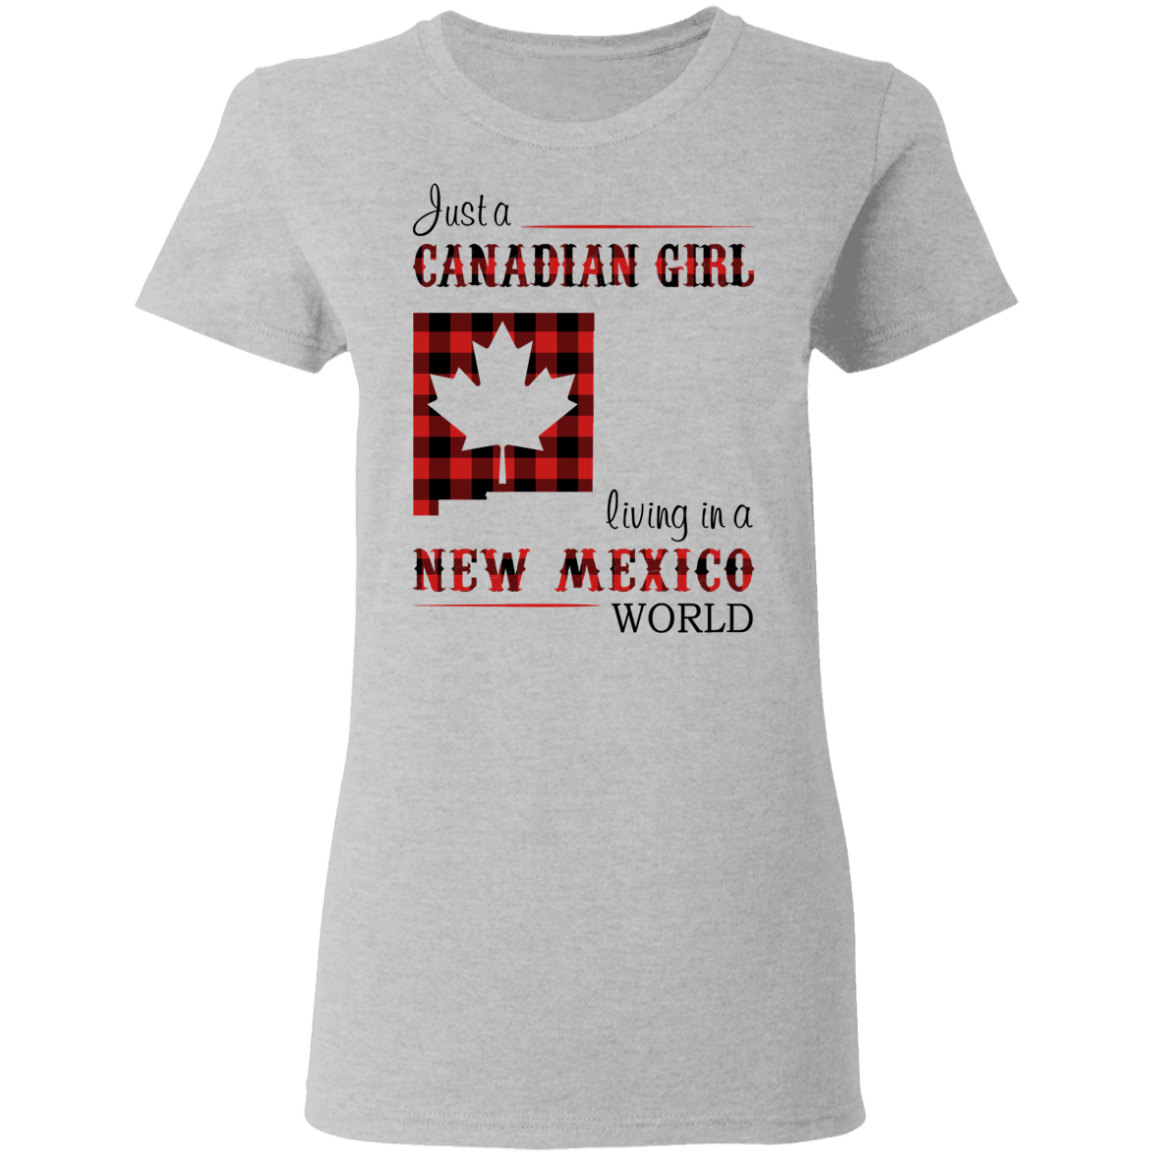 JUST A CANADIAN GIRL LIVING IN A NEW MEXICO WORLD